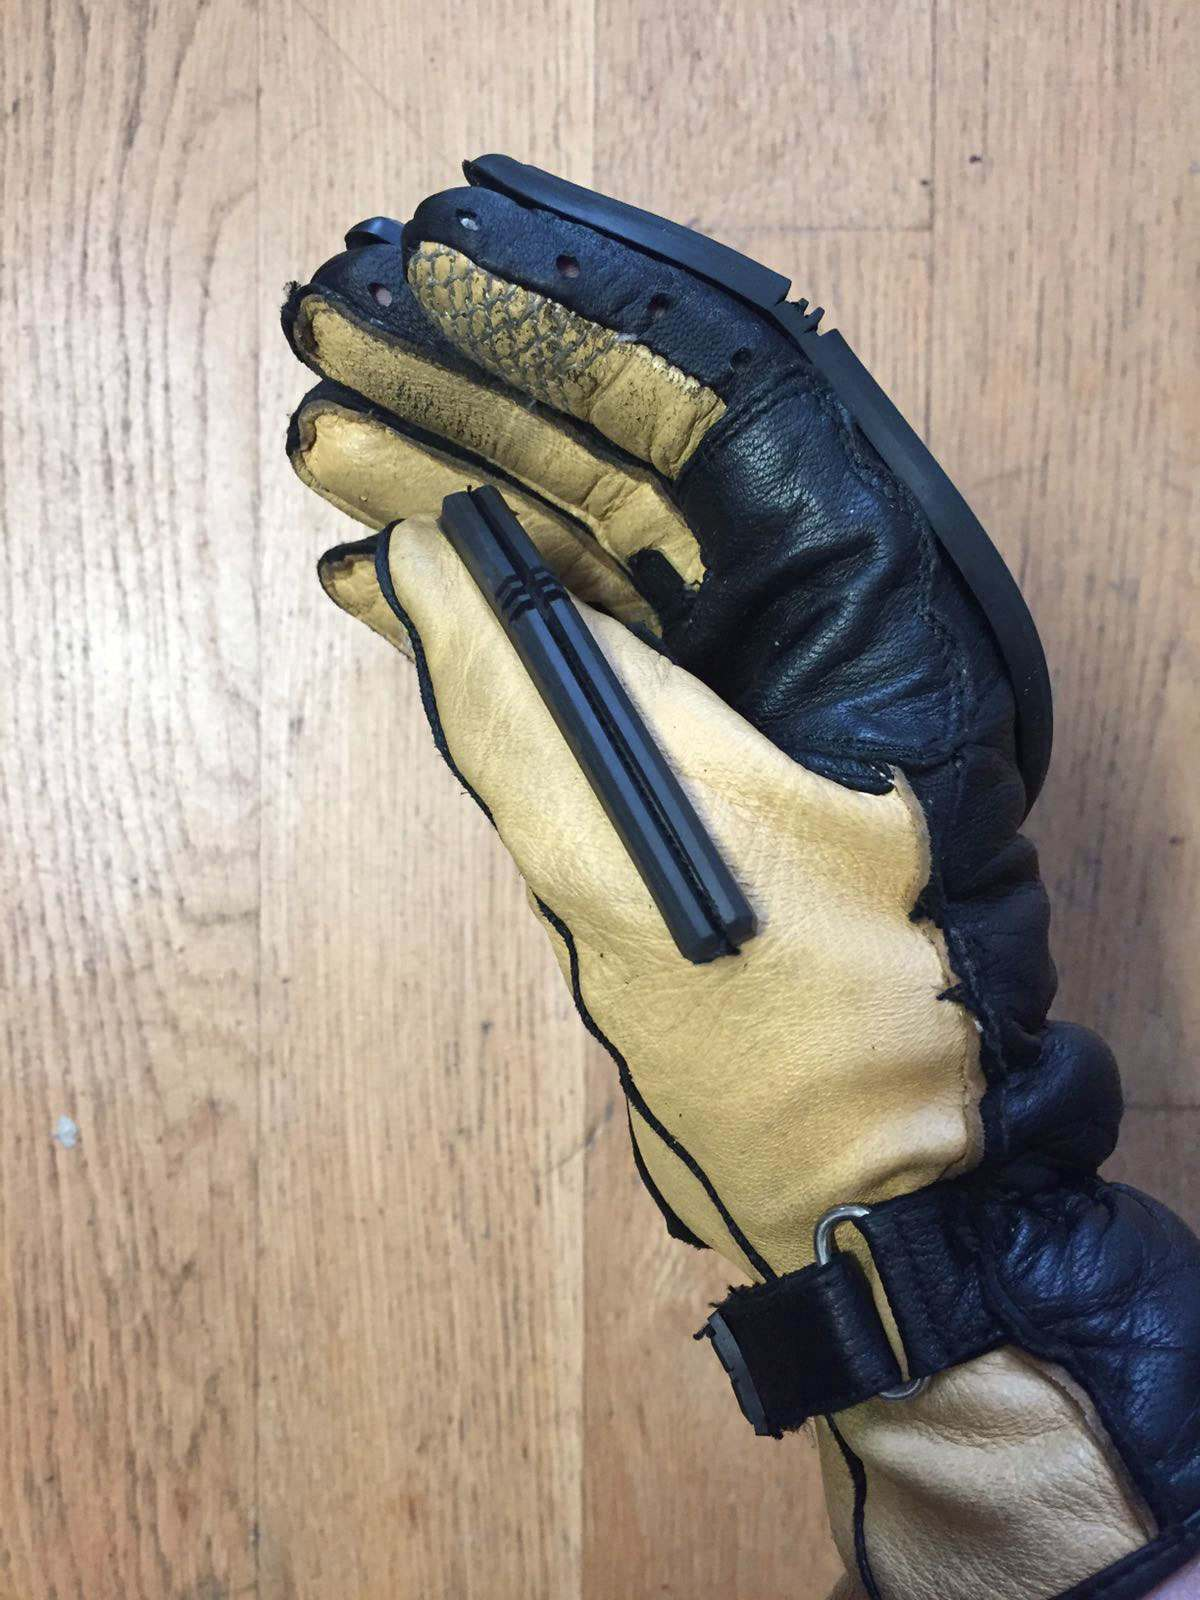 Velomacchi Speedway Gloves Review 2